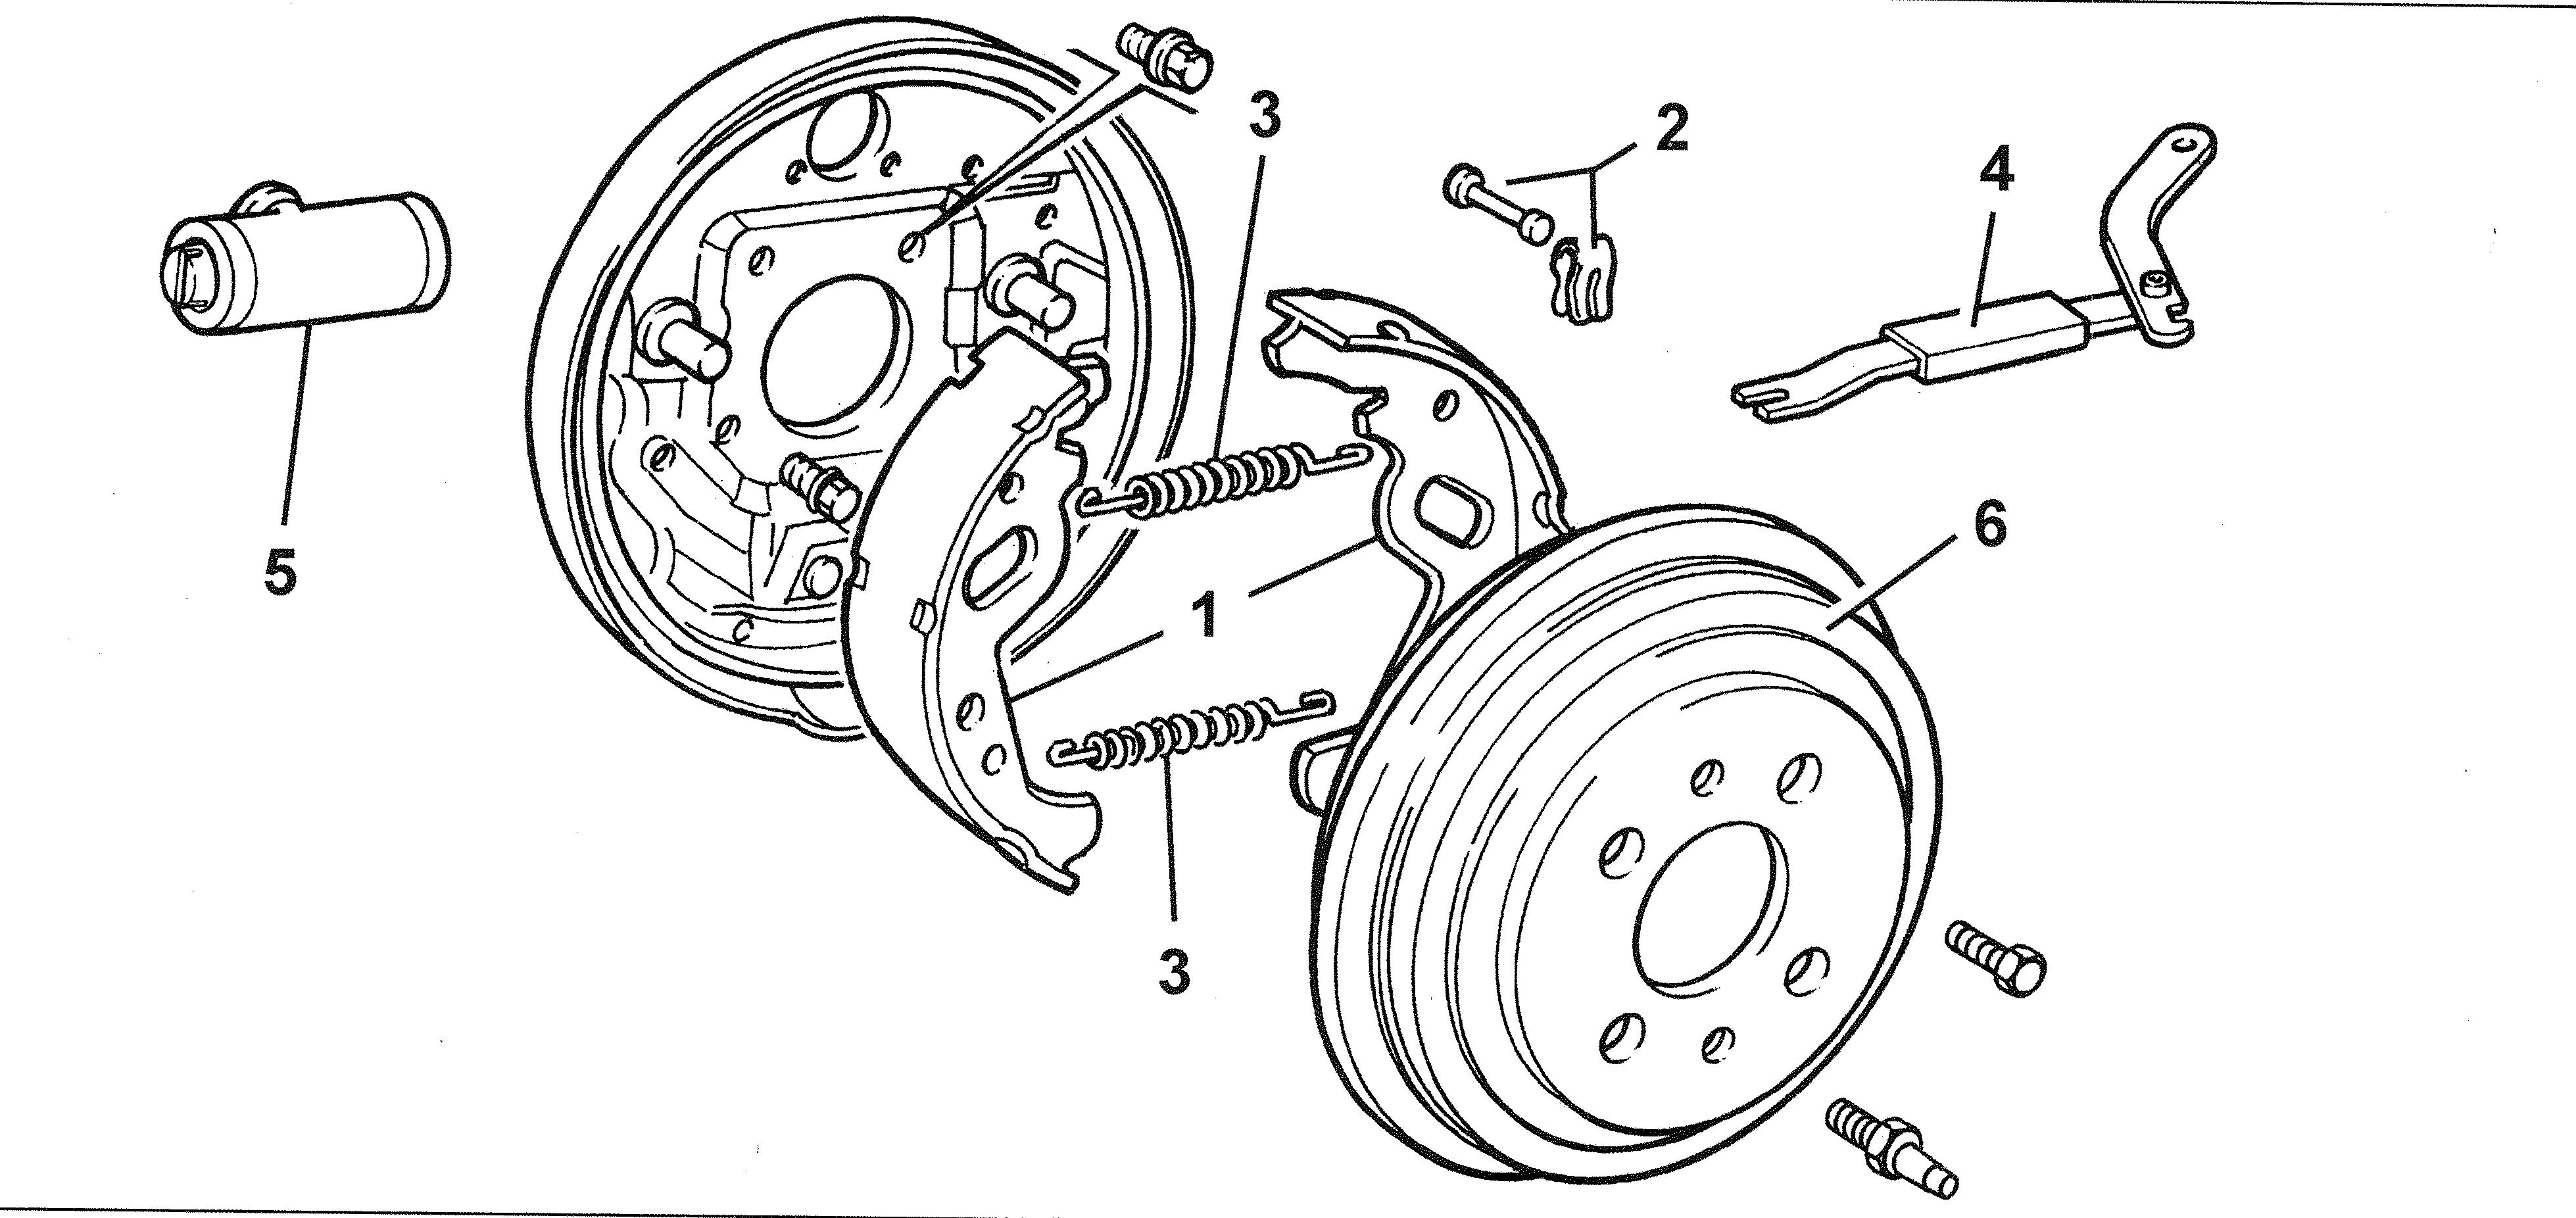 2923 Breather Hose Pipe Fiat Punto Mk2 Panda Seicento Doblo also Fiat 500 Tail Light Wiring Diagram as well Solar Panel To Maintain Charge Battery 107984 further Mercedes Benz further Fiat 4. on classic fiat 500